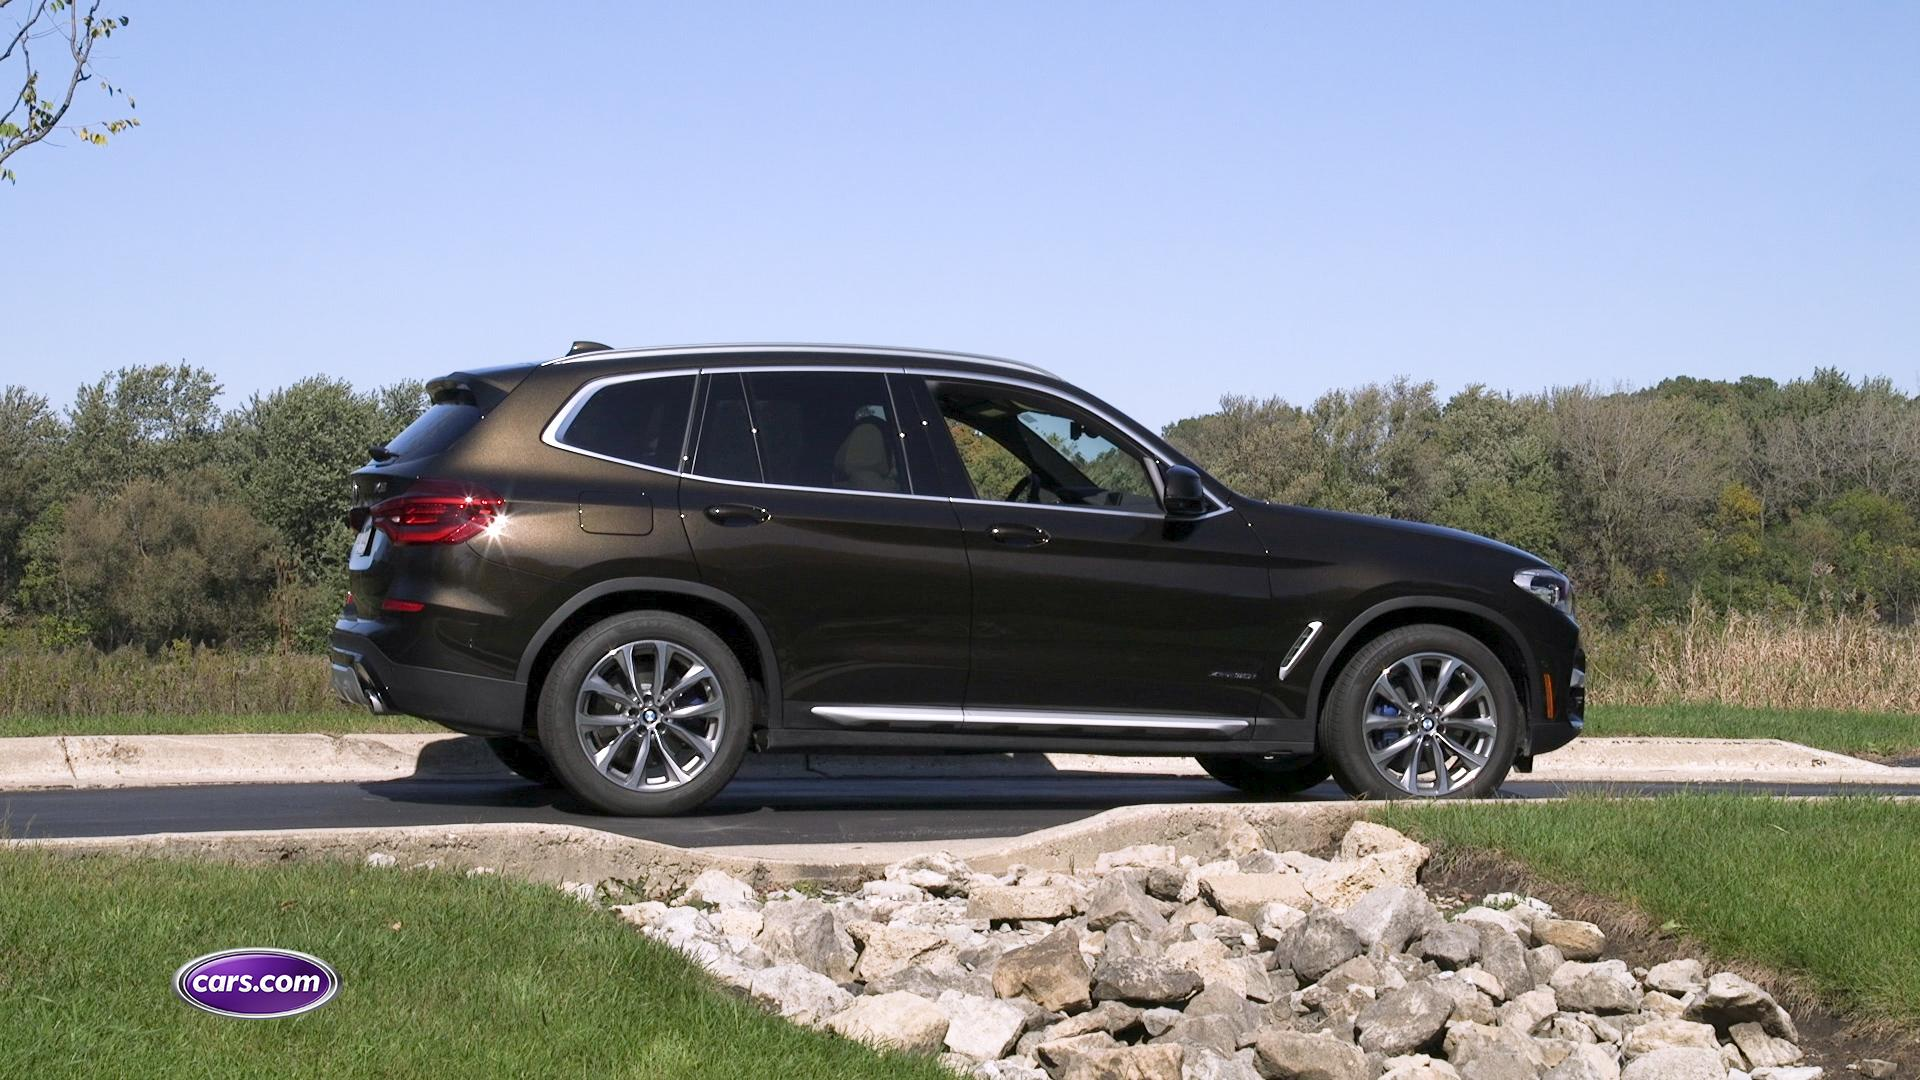 Video: 2018 BMW X3 Review: Is the X1 a Better Buy? — Cars.com